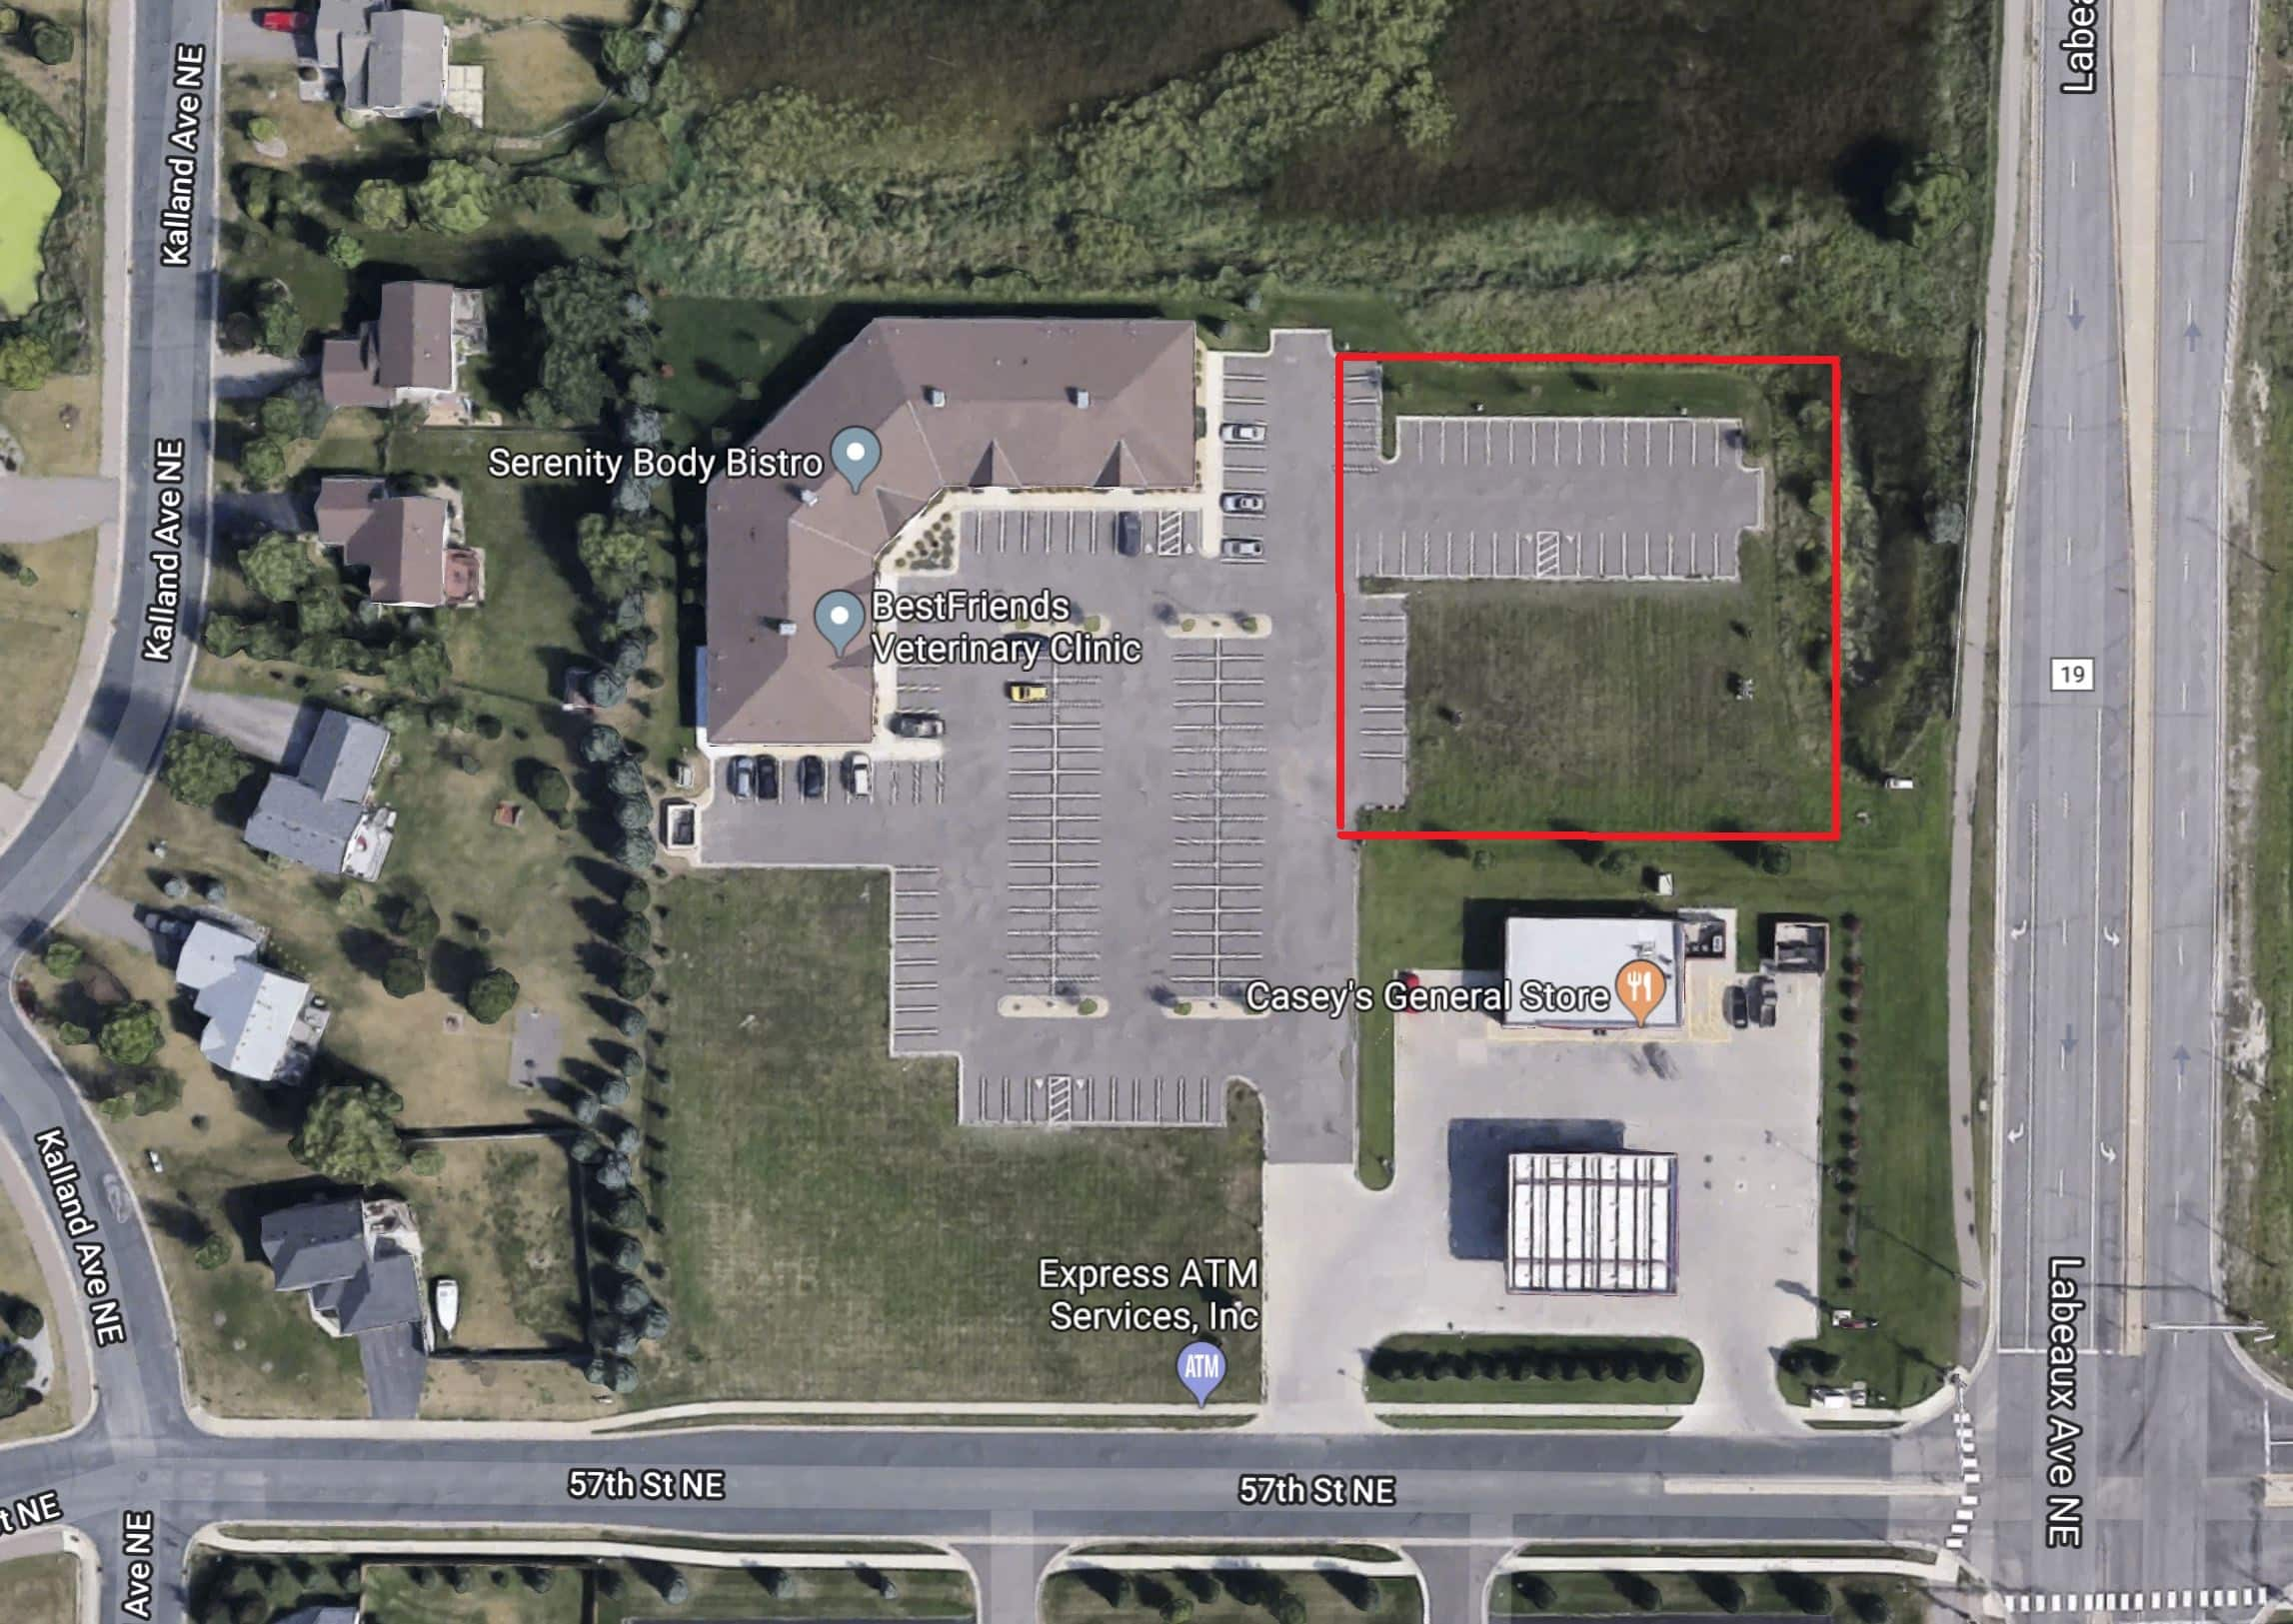 Albertville – 57th Street Commercial Land Parkside